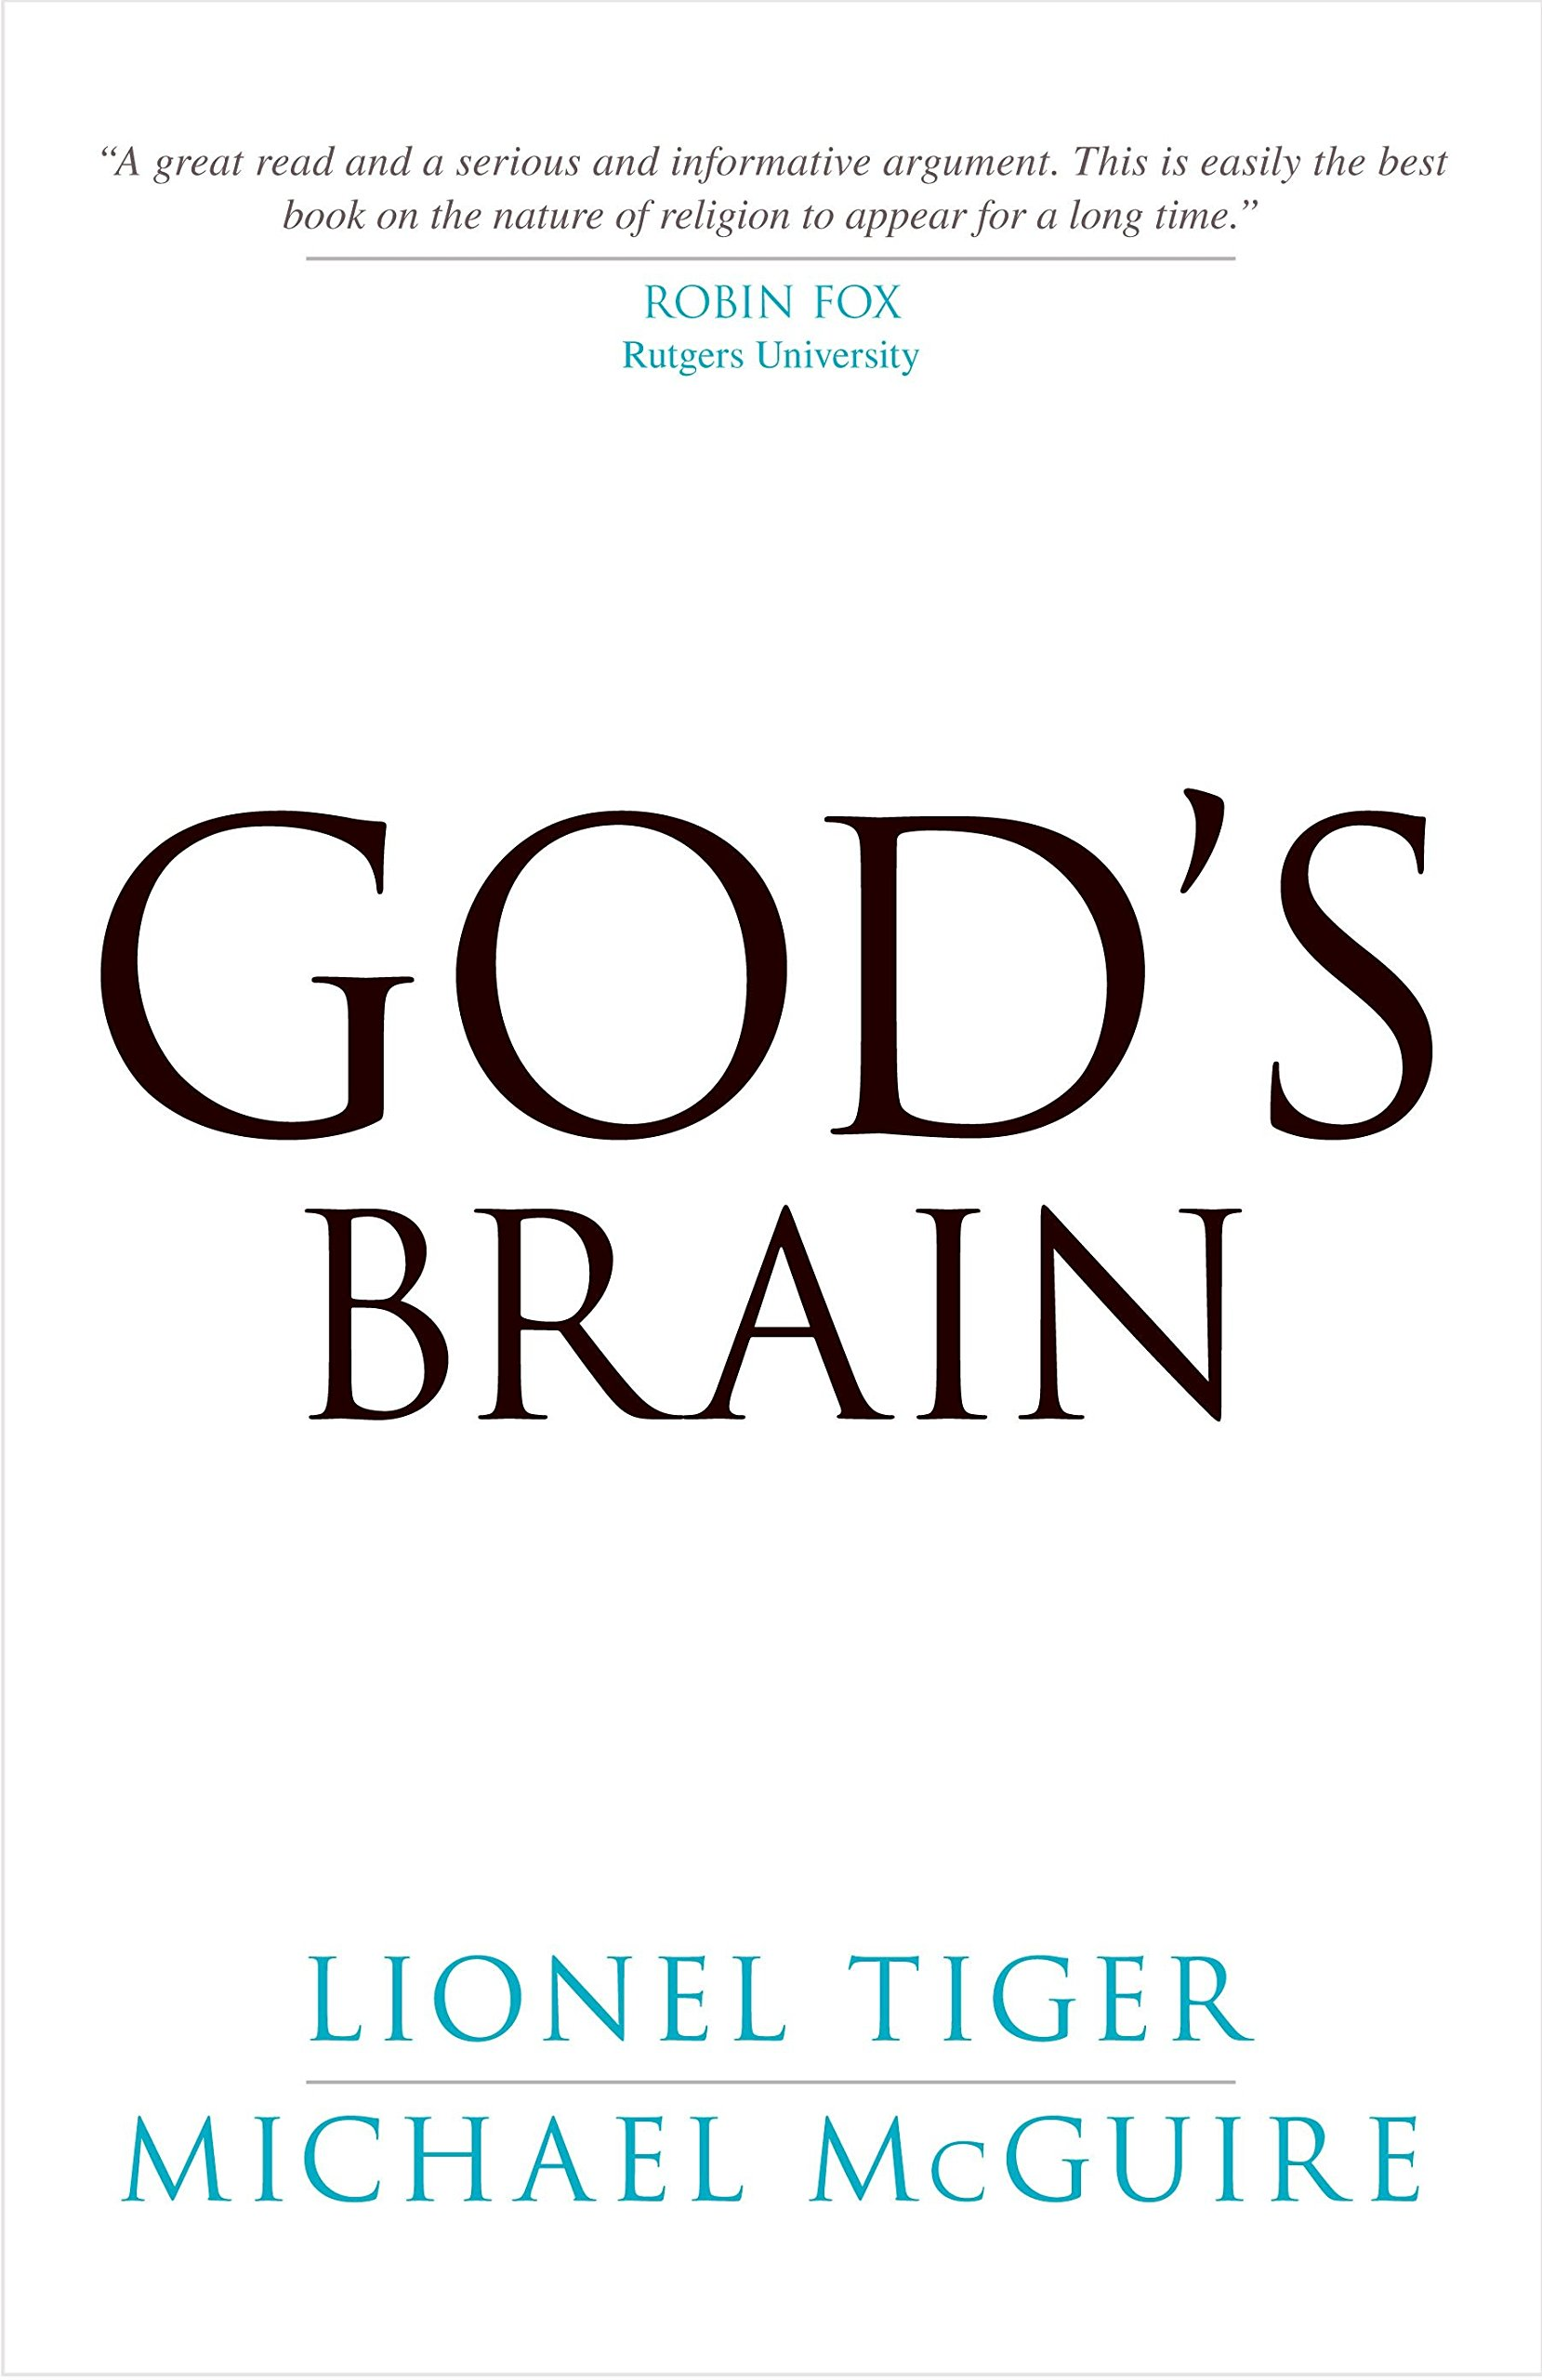 God's Brain: Lionel Tiger, Michael McGuire: 9781616141646: Amazon.com: Books